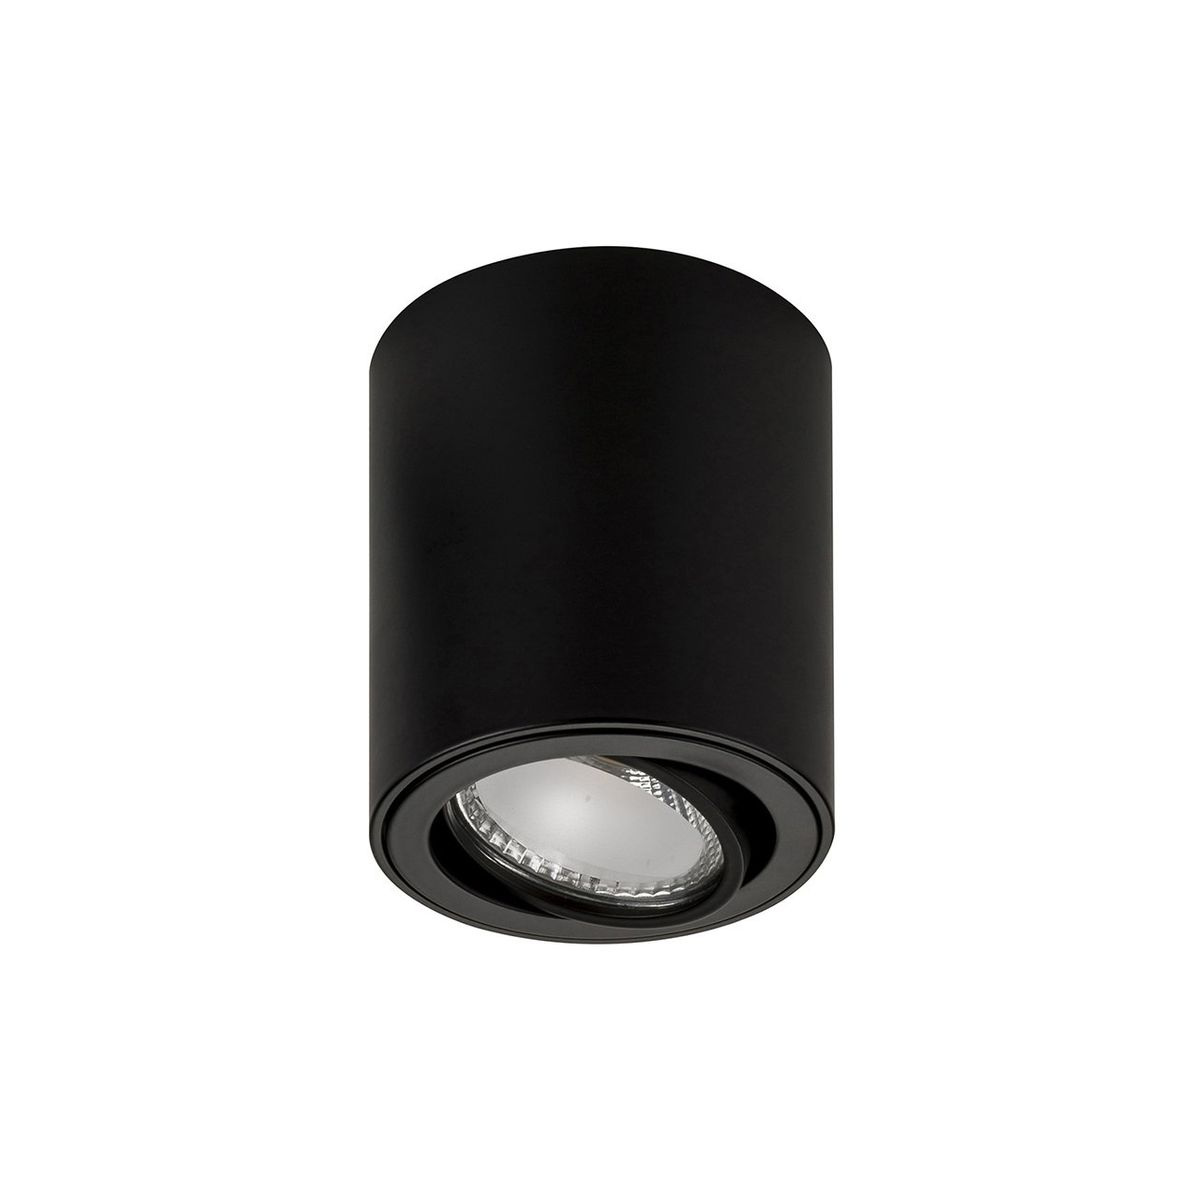 HV5812-BLK - NELLA 7w LED Black Adjustable Surface Mounted Downlight – Bild 1